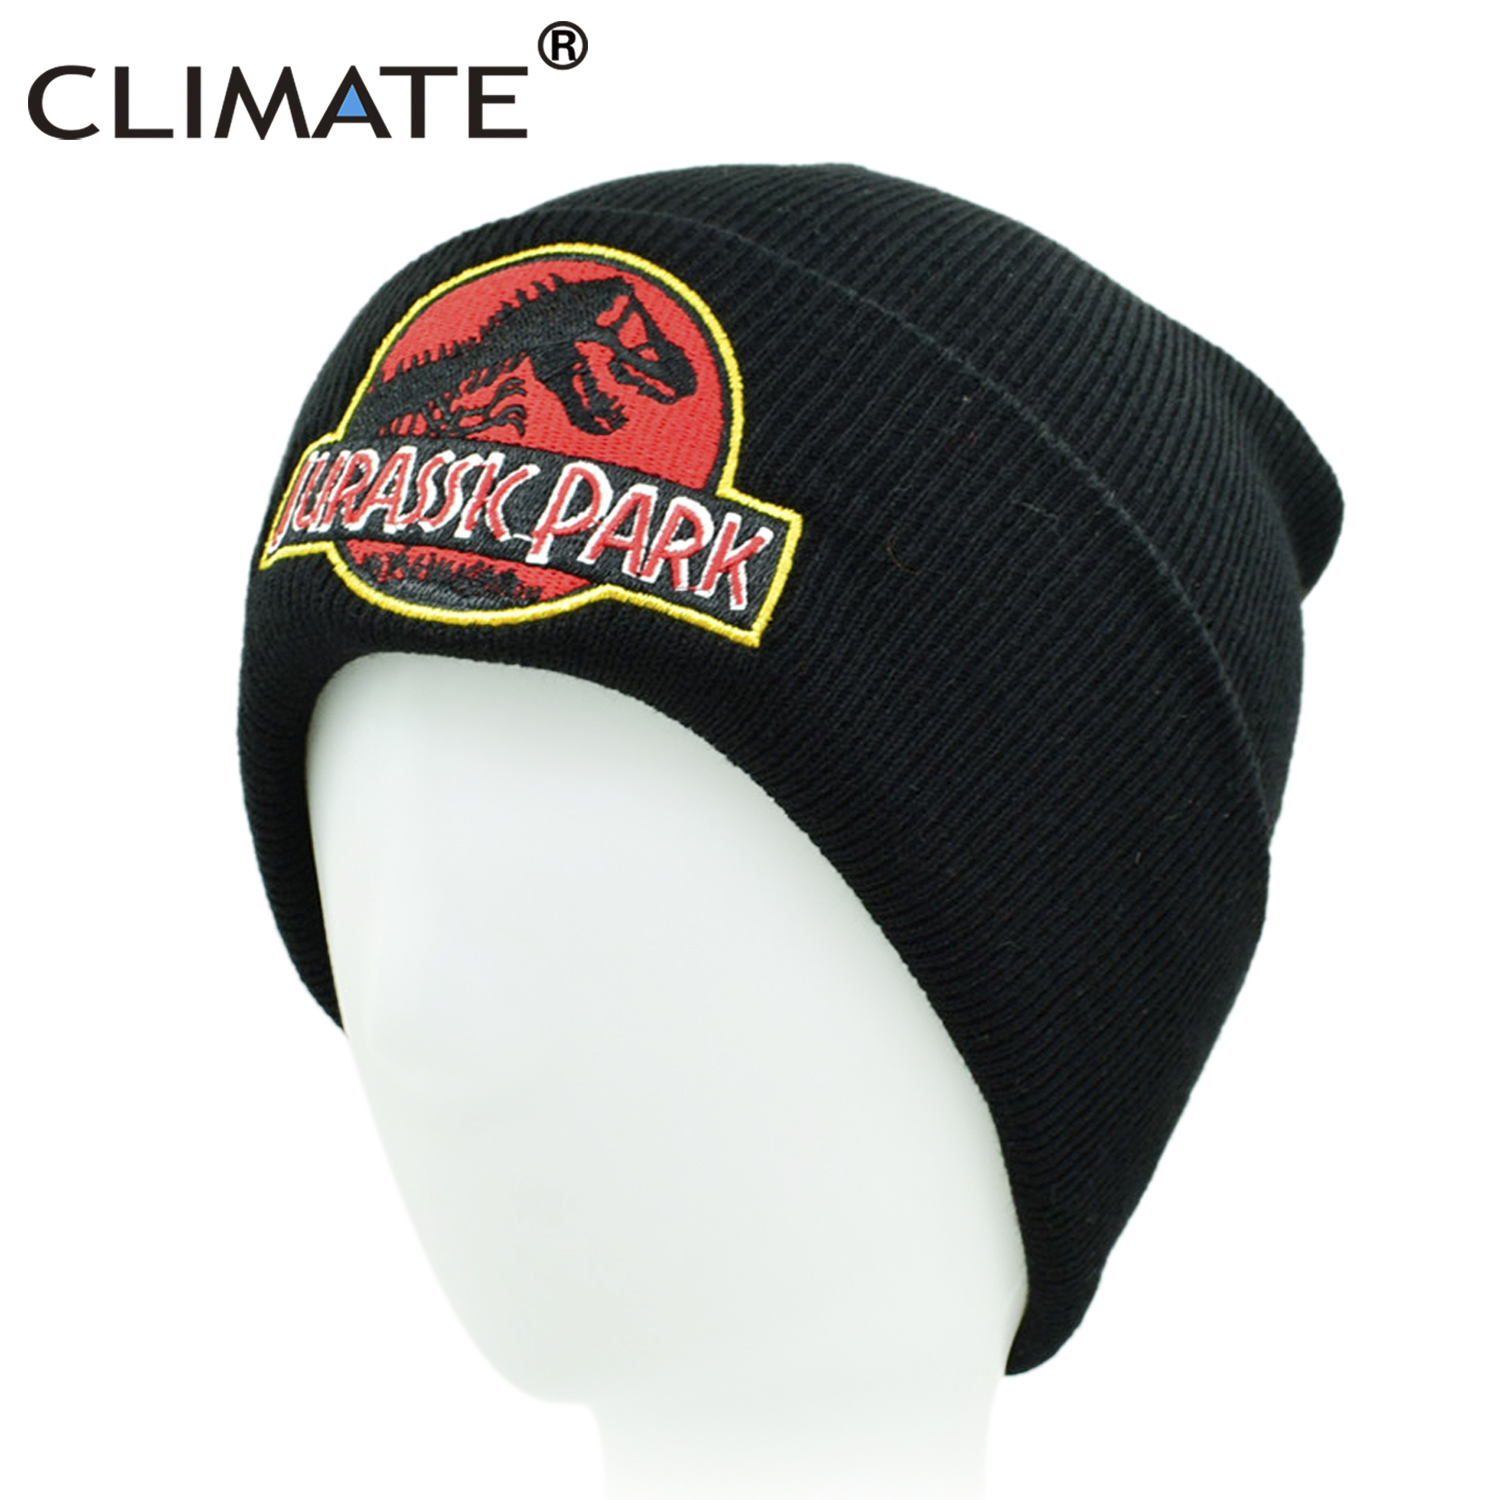 88ceebc03c0 CLIMATE Men Beanie Jurassic Park Winter Hat Jurassic World Knit Cap Hat  Dinosaur Black Beanie Hat